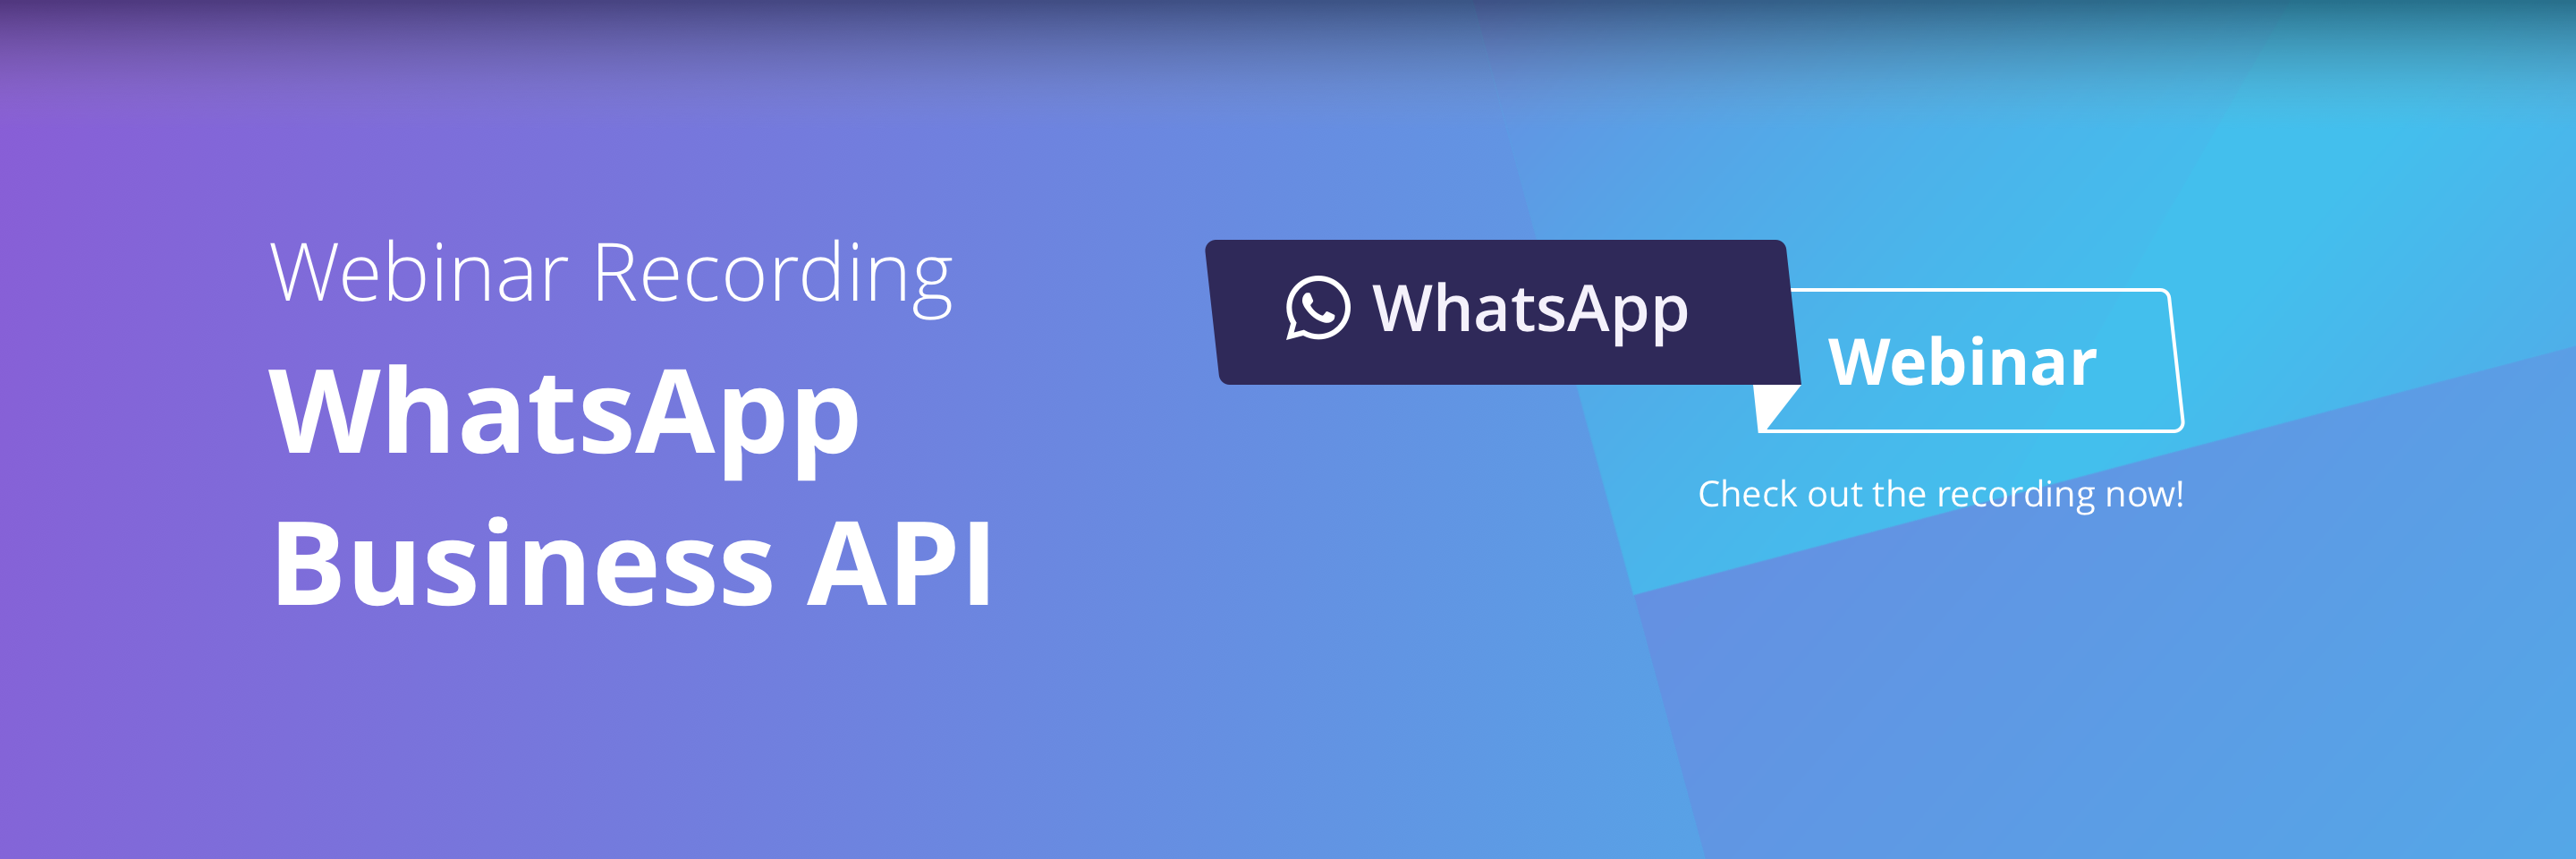 image_teaser_webinars_whatsapp_business_api_header_001_2x